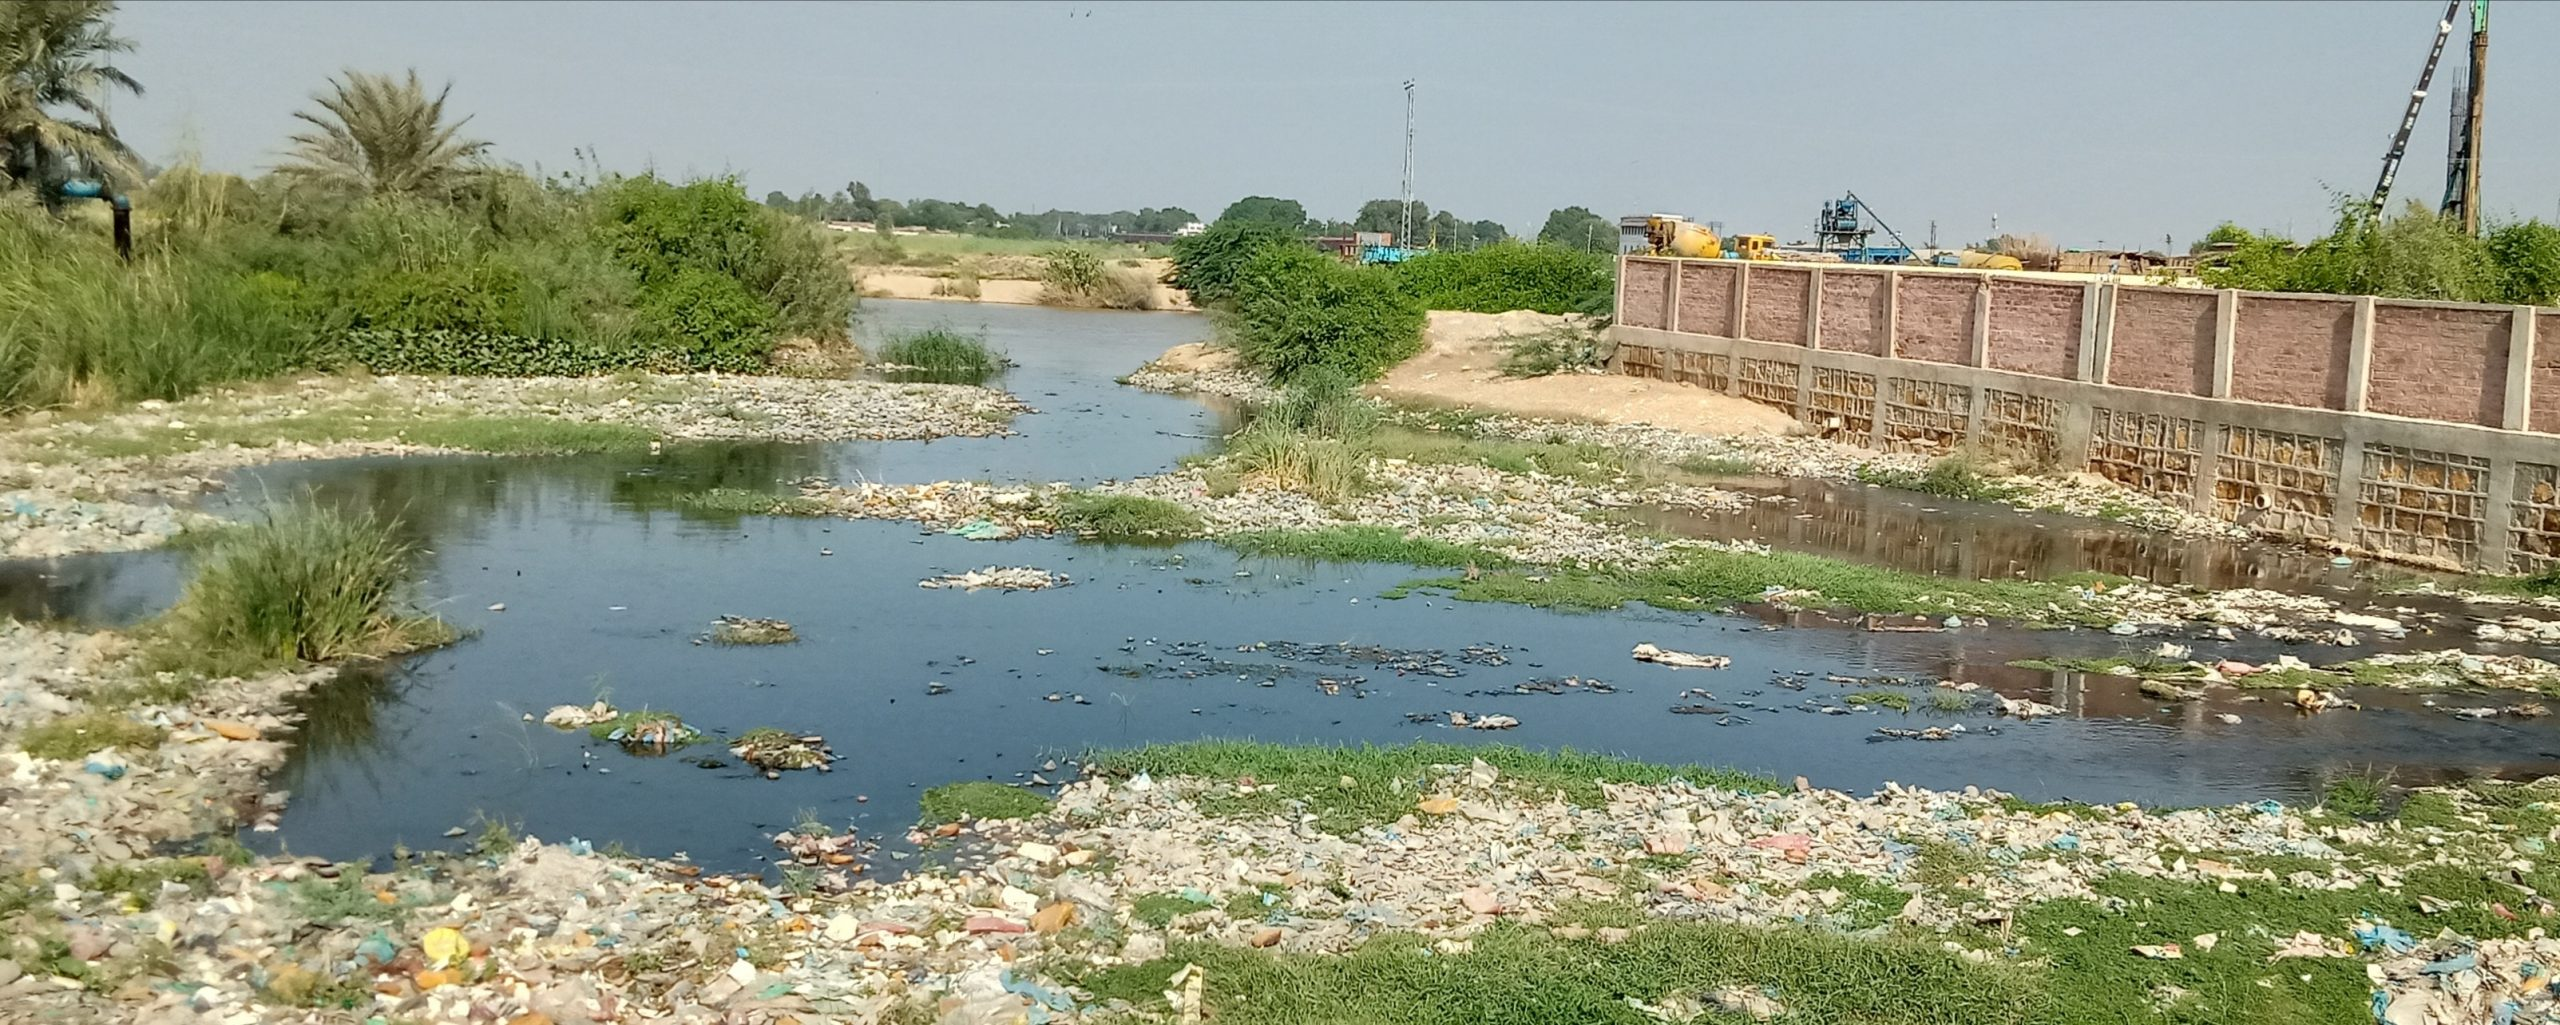 Water pollution continues posing threat to human life in Sindh-Sindh Courier-5